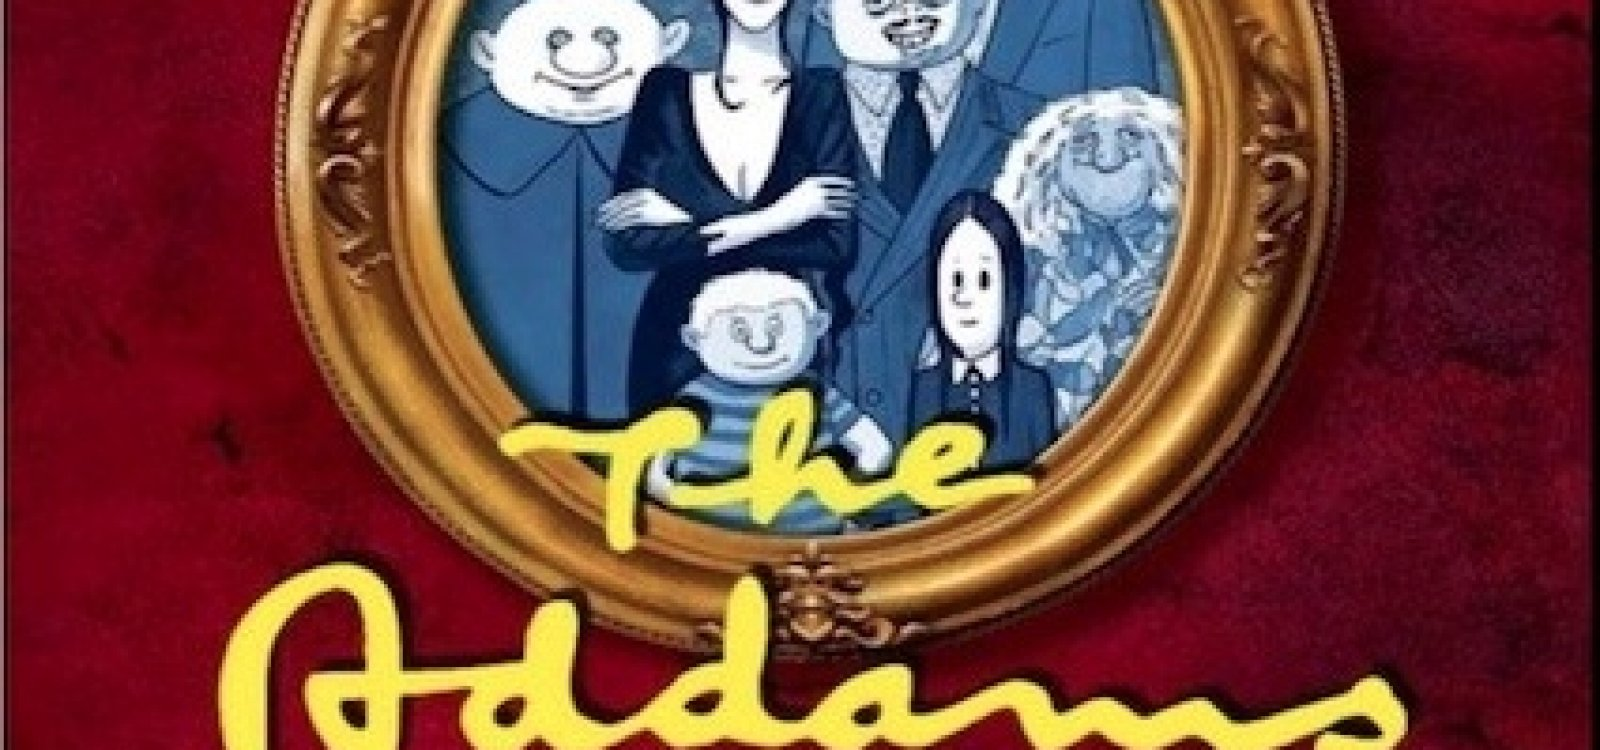 Stablegold Hospitality Cheers On the Addams Family